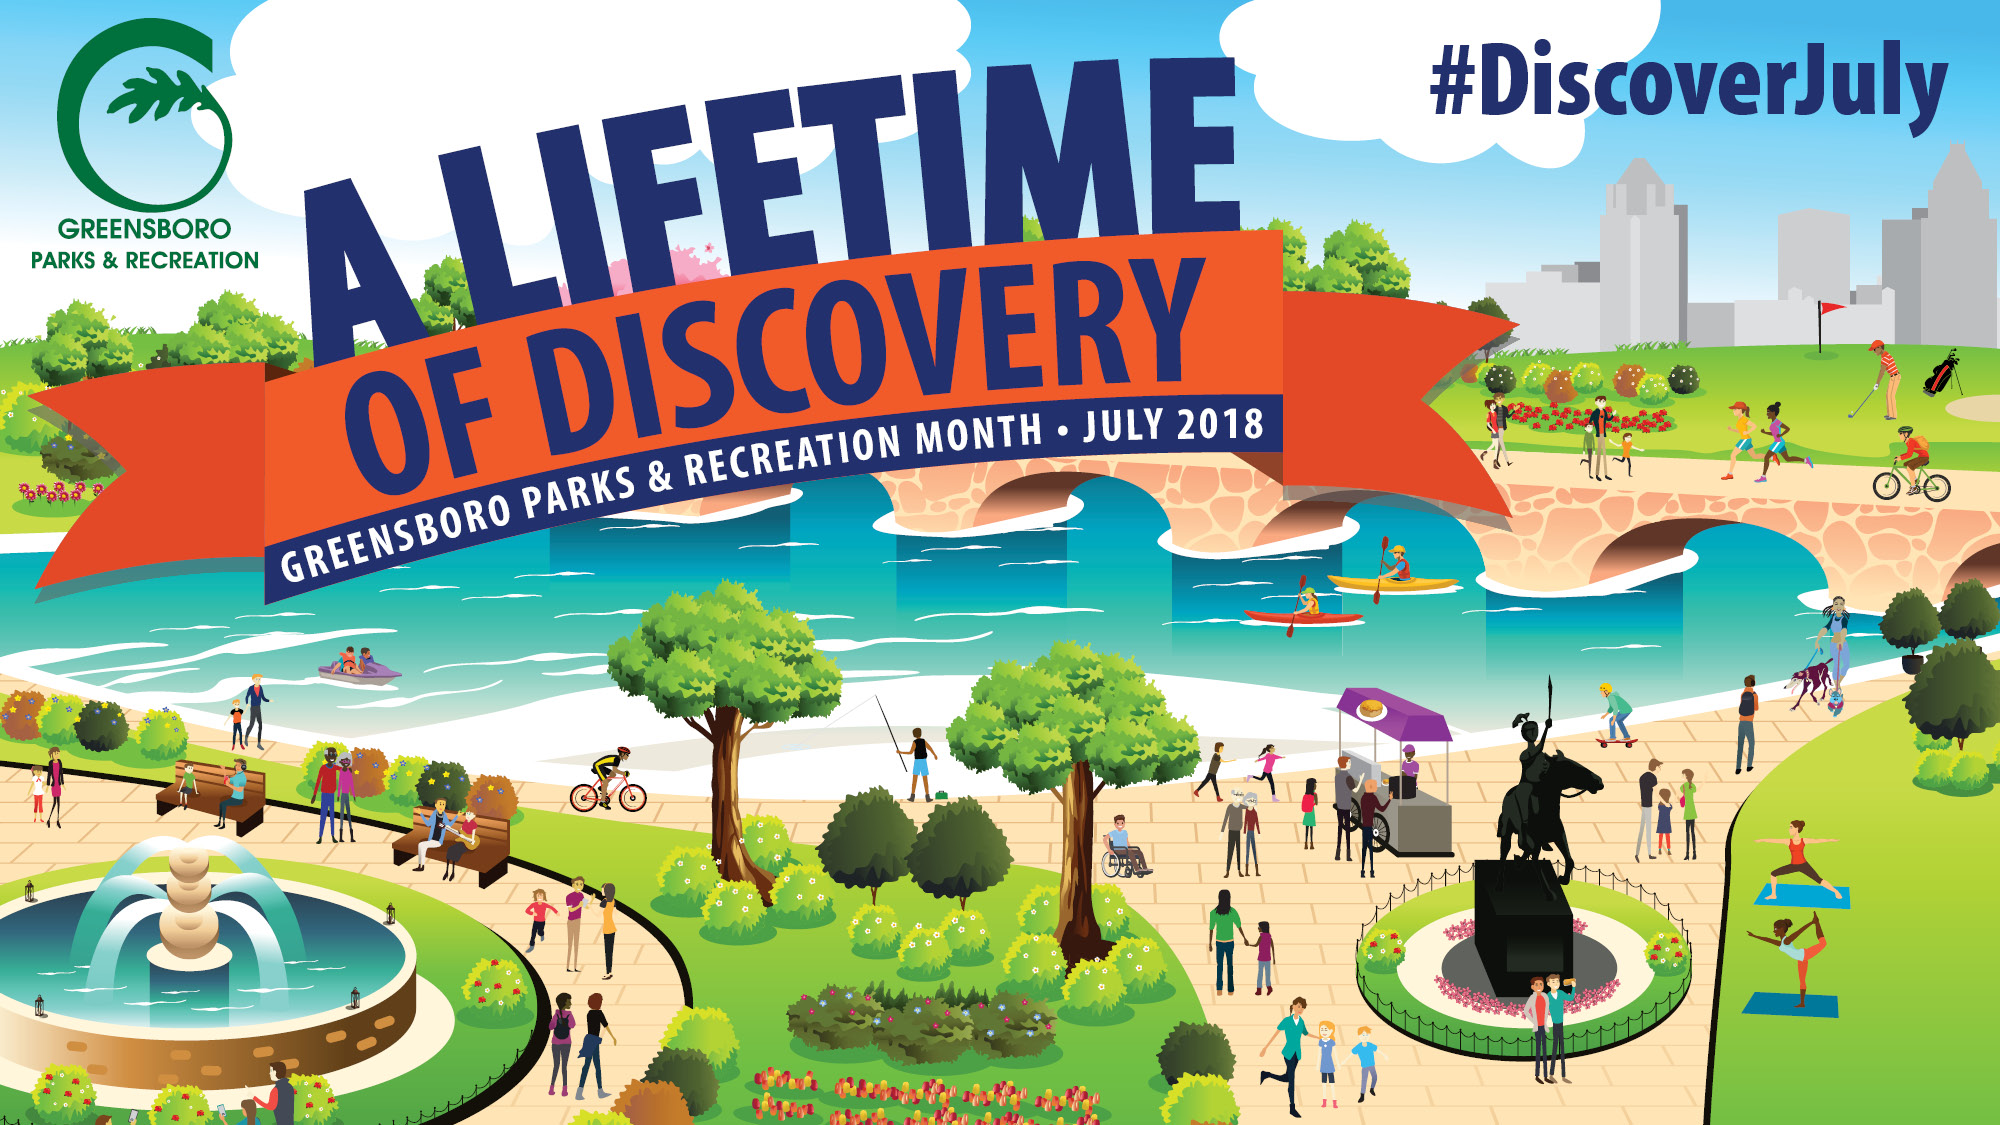 Parks and Recreation Celebrates 'A Lifetime of Discovery' in July